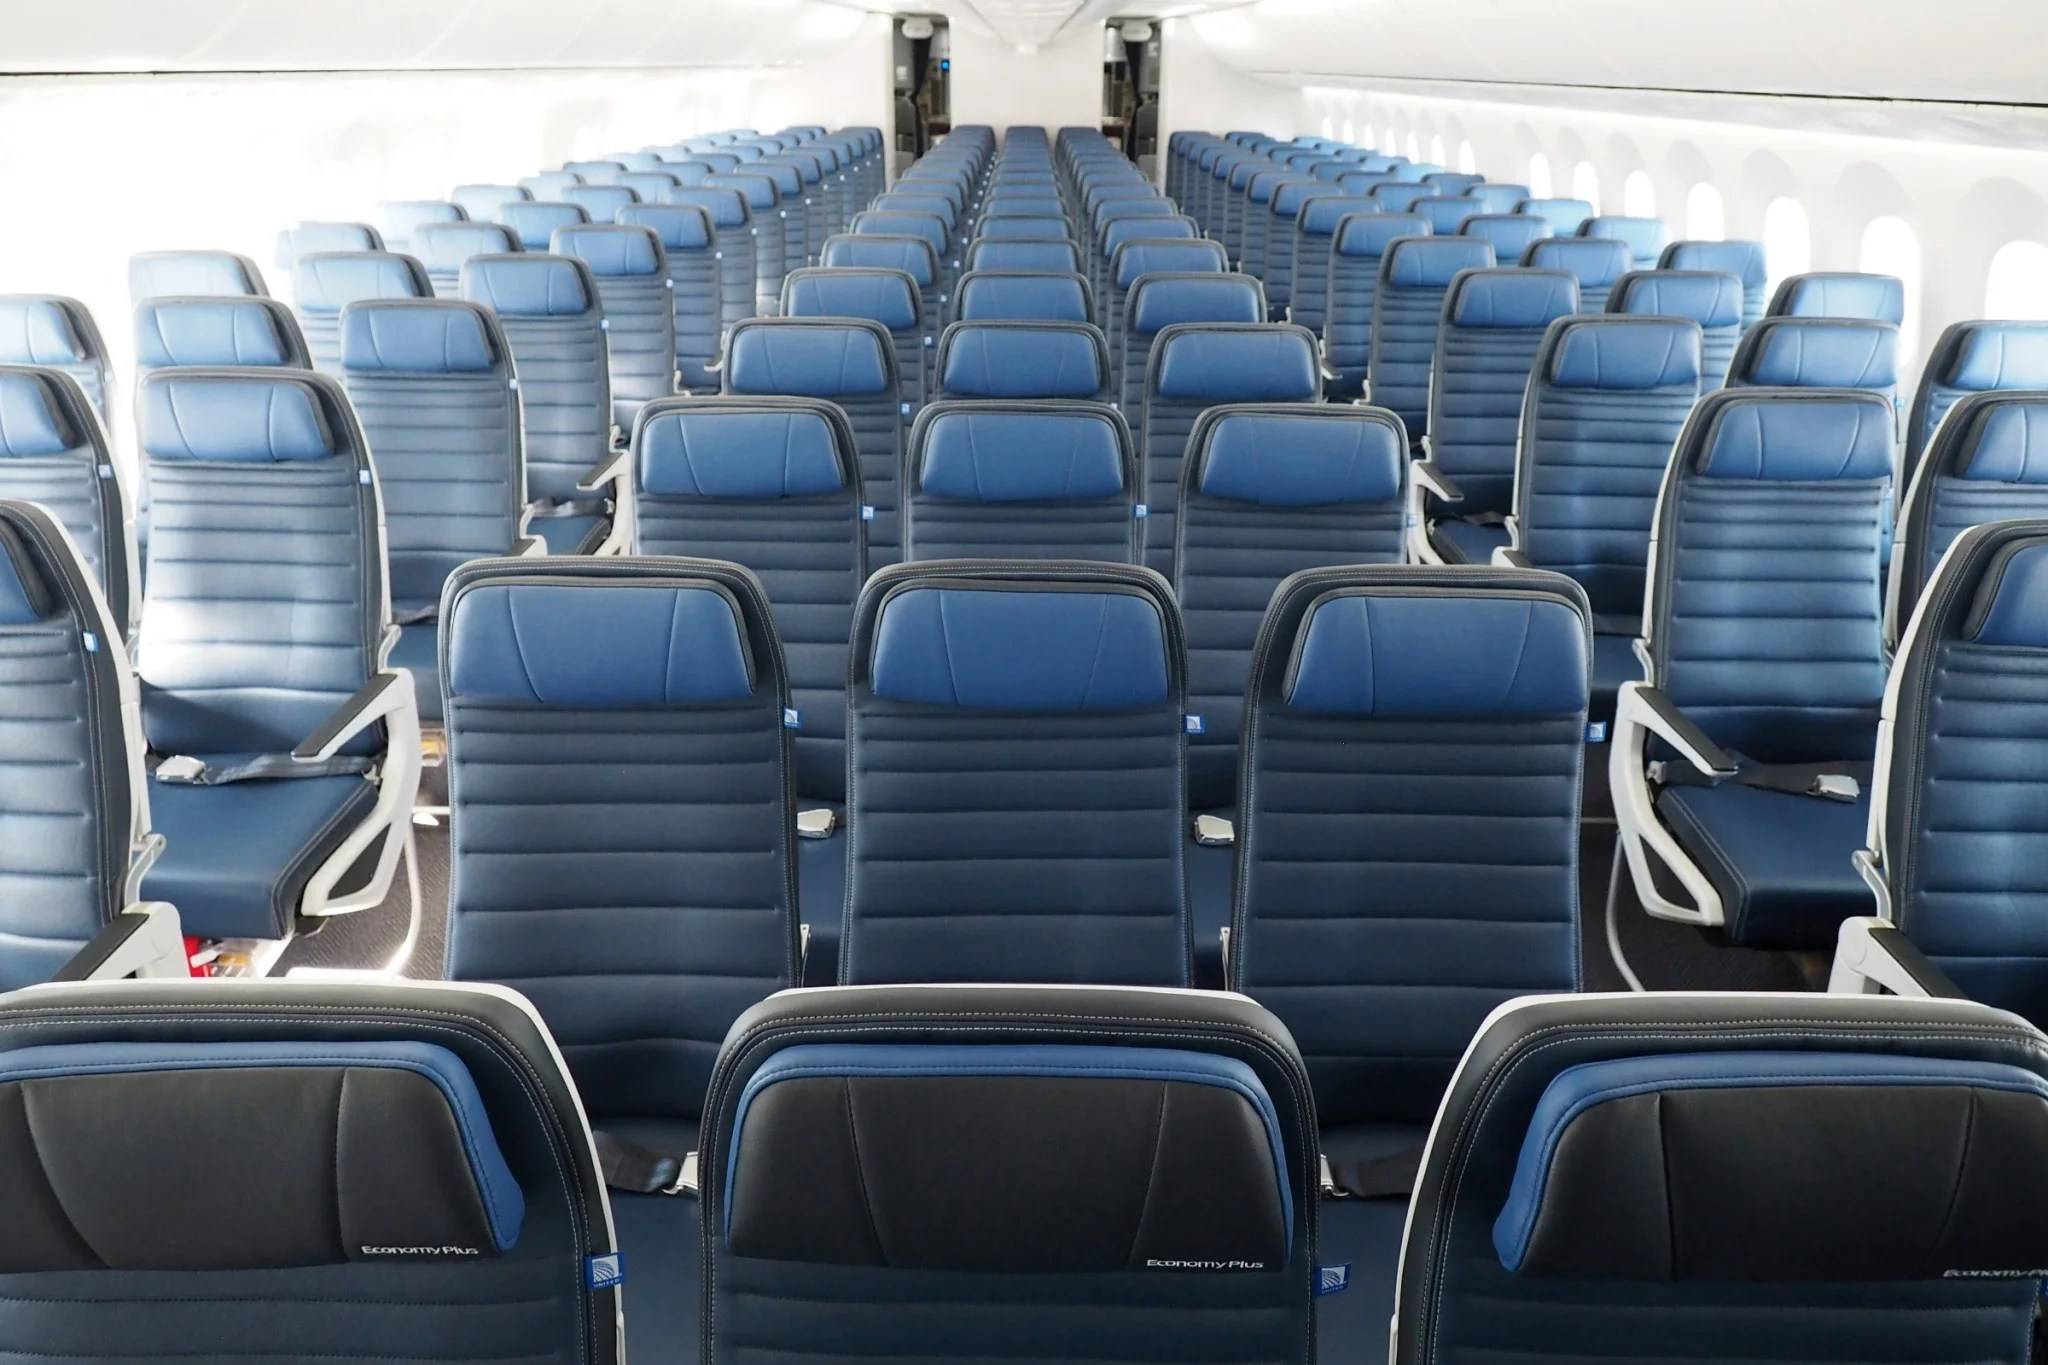 Why airplanes don't have a 13th row